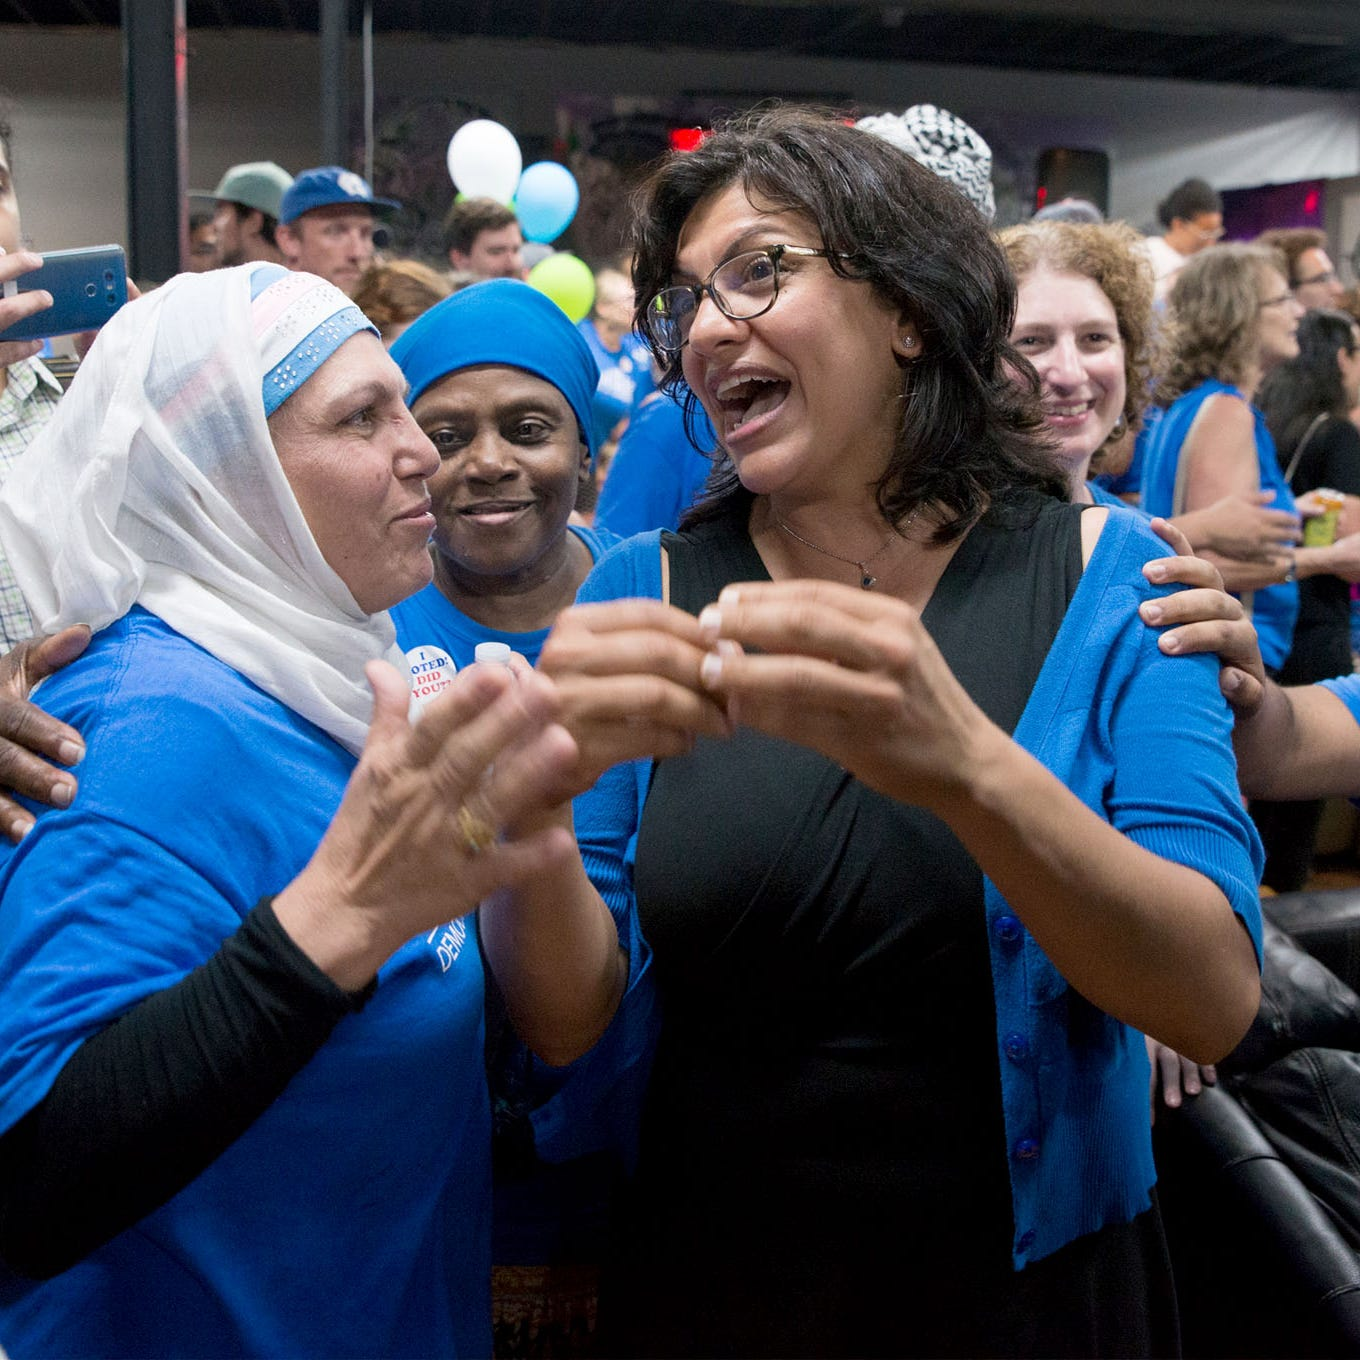 Rashida Tlaib 'probably not' going to support Nancy Pelosi as speaker